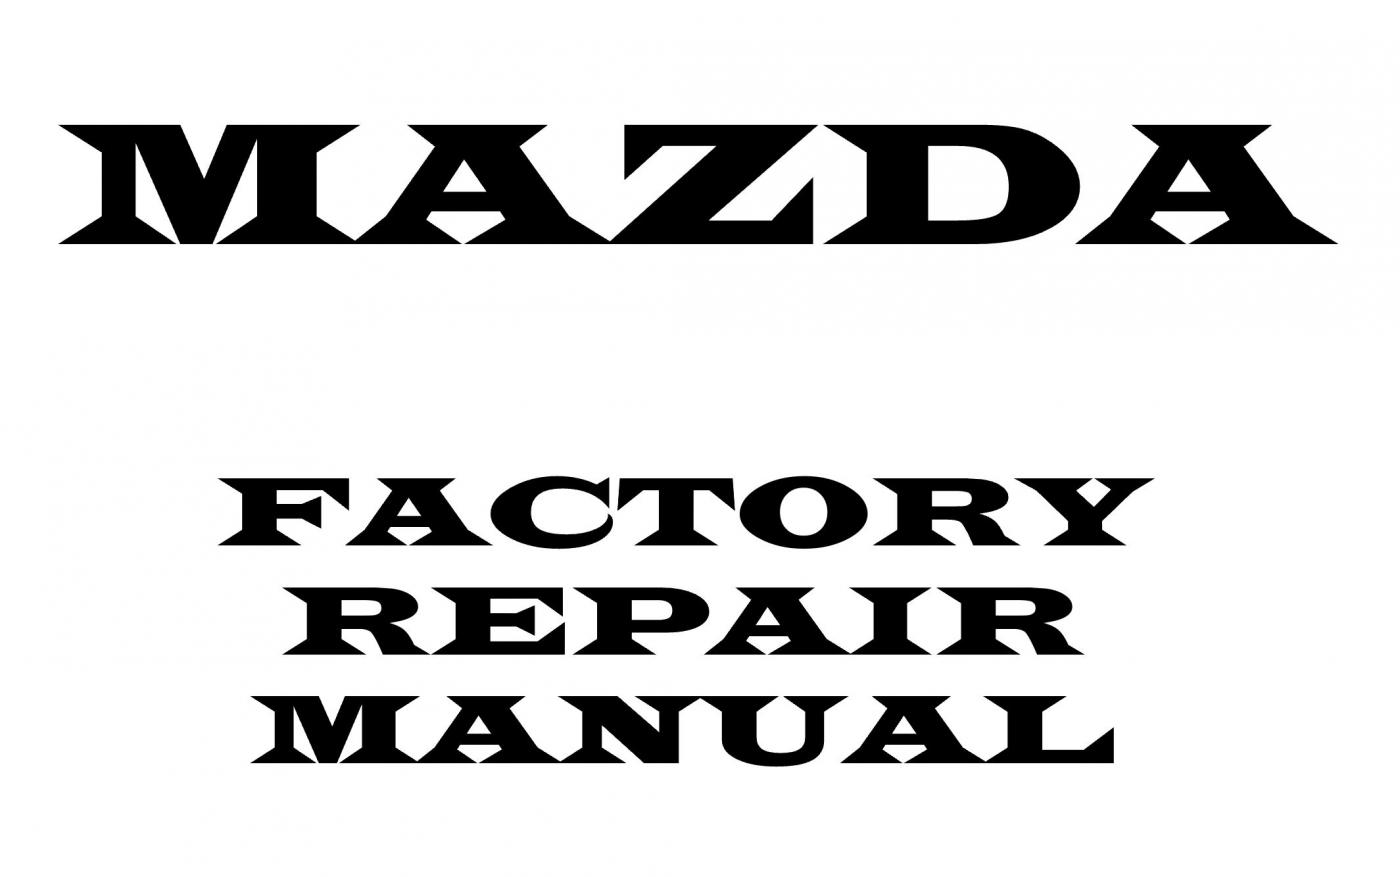 Mazda B SERIES 2009 2010 repair manual